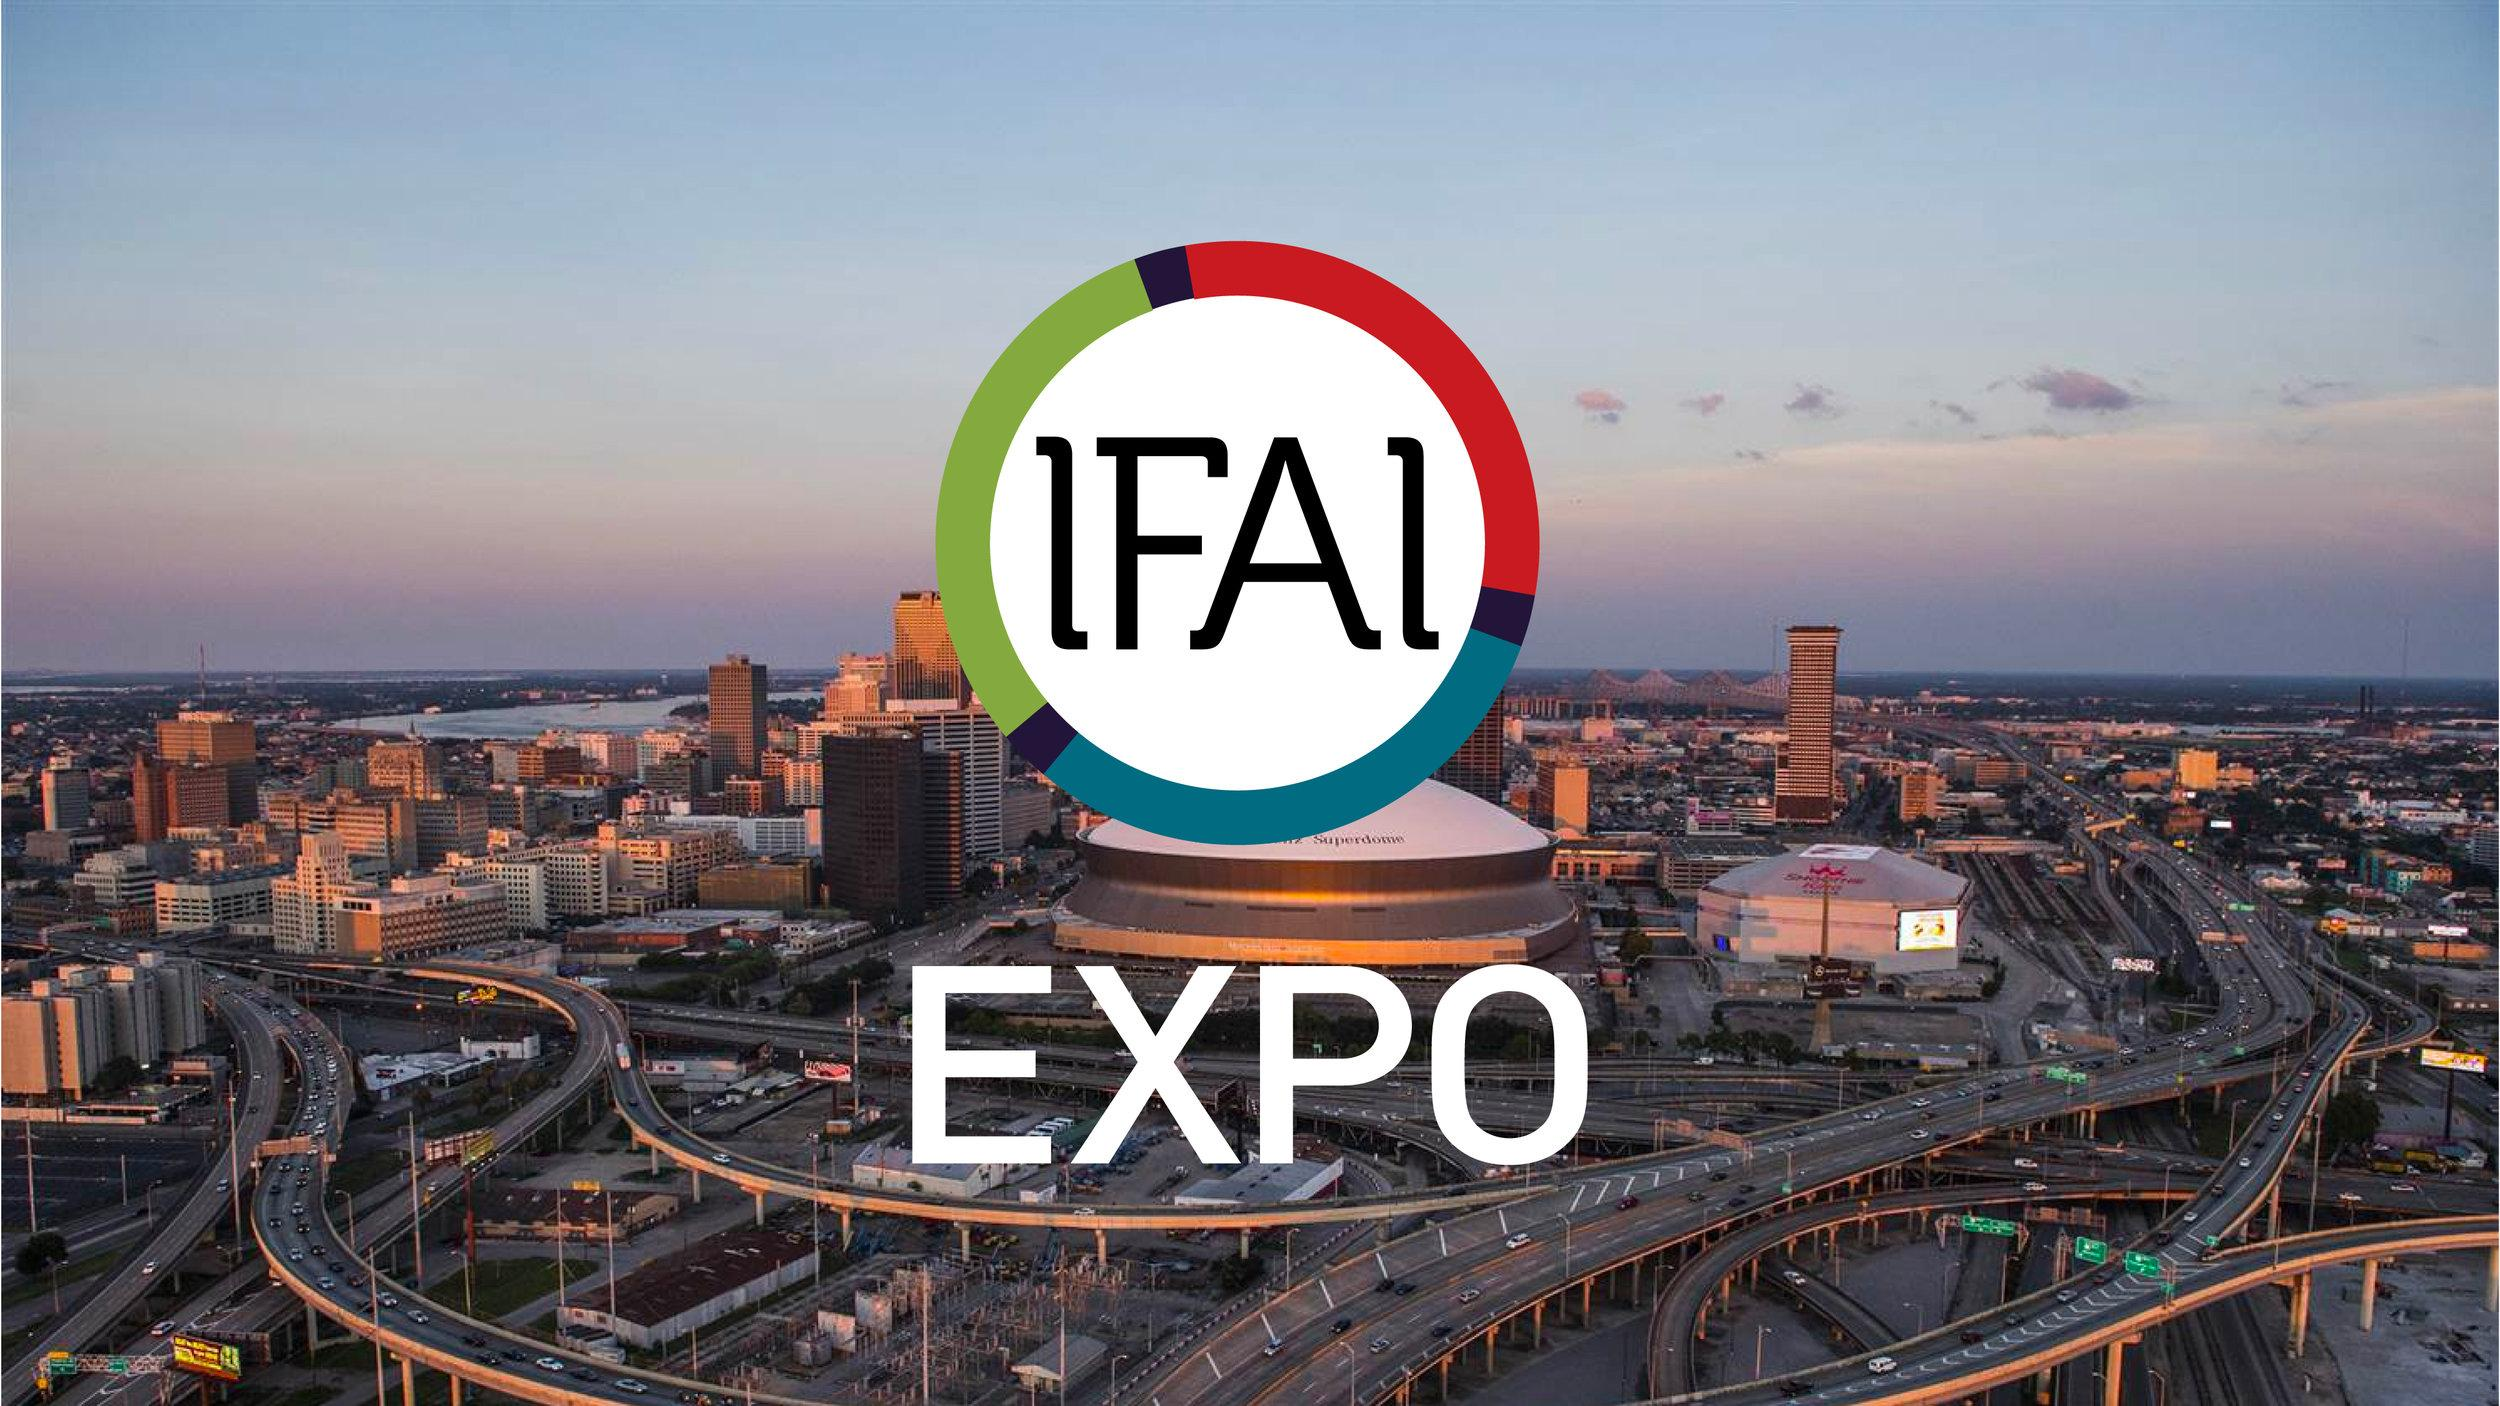 ASL attends AFAI Expo in New Orleans.